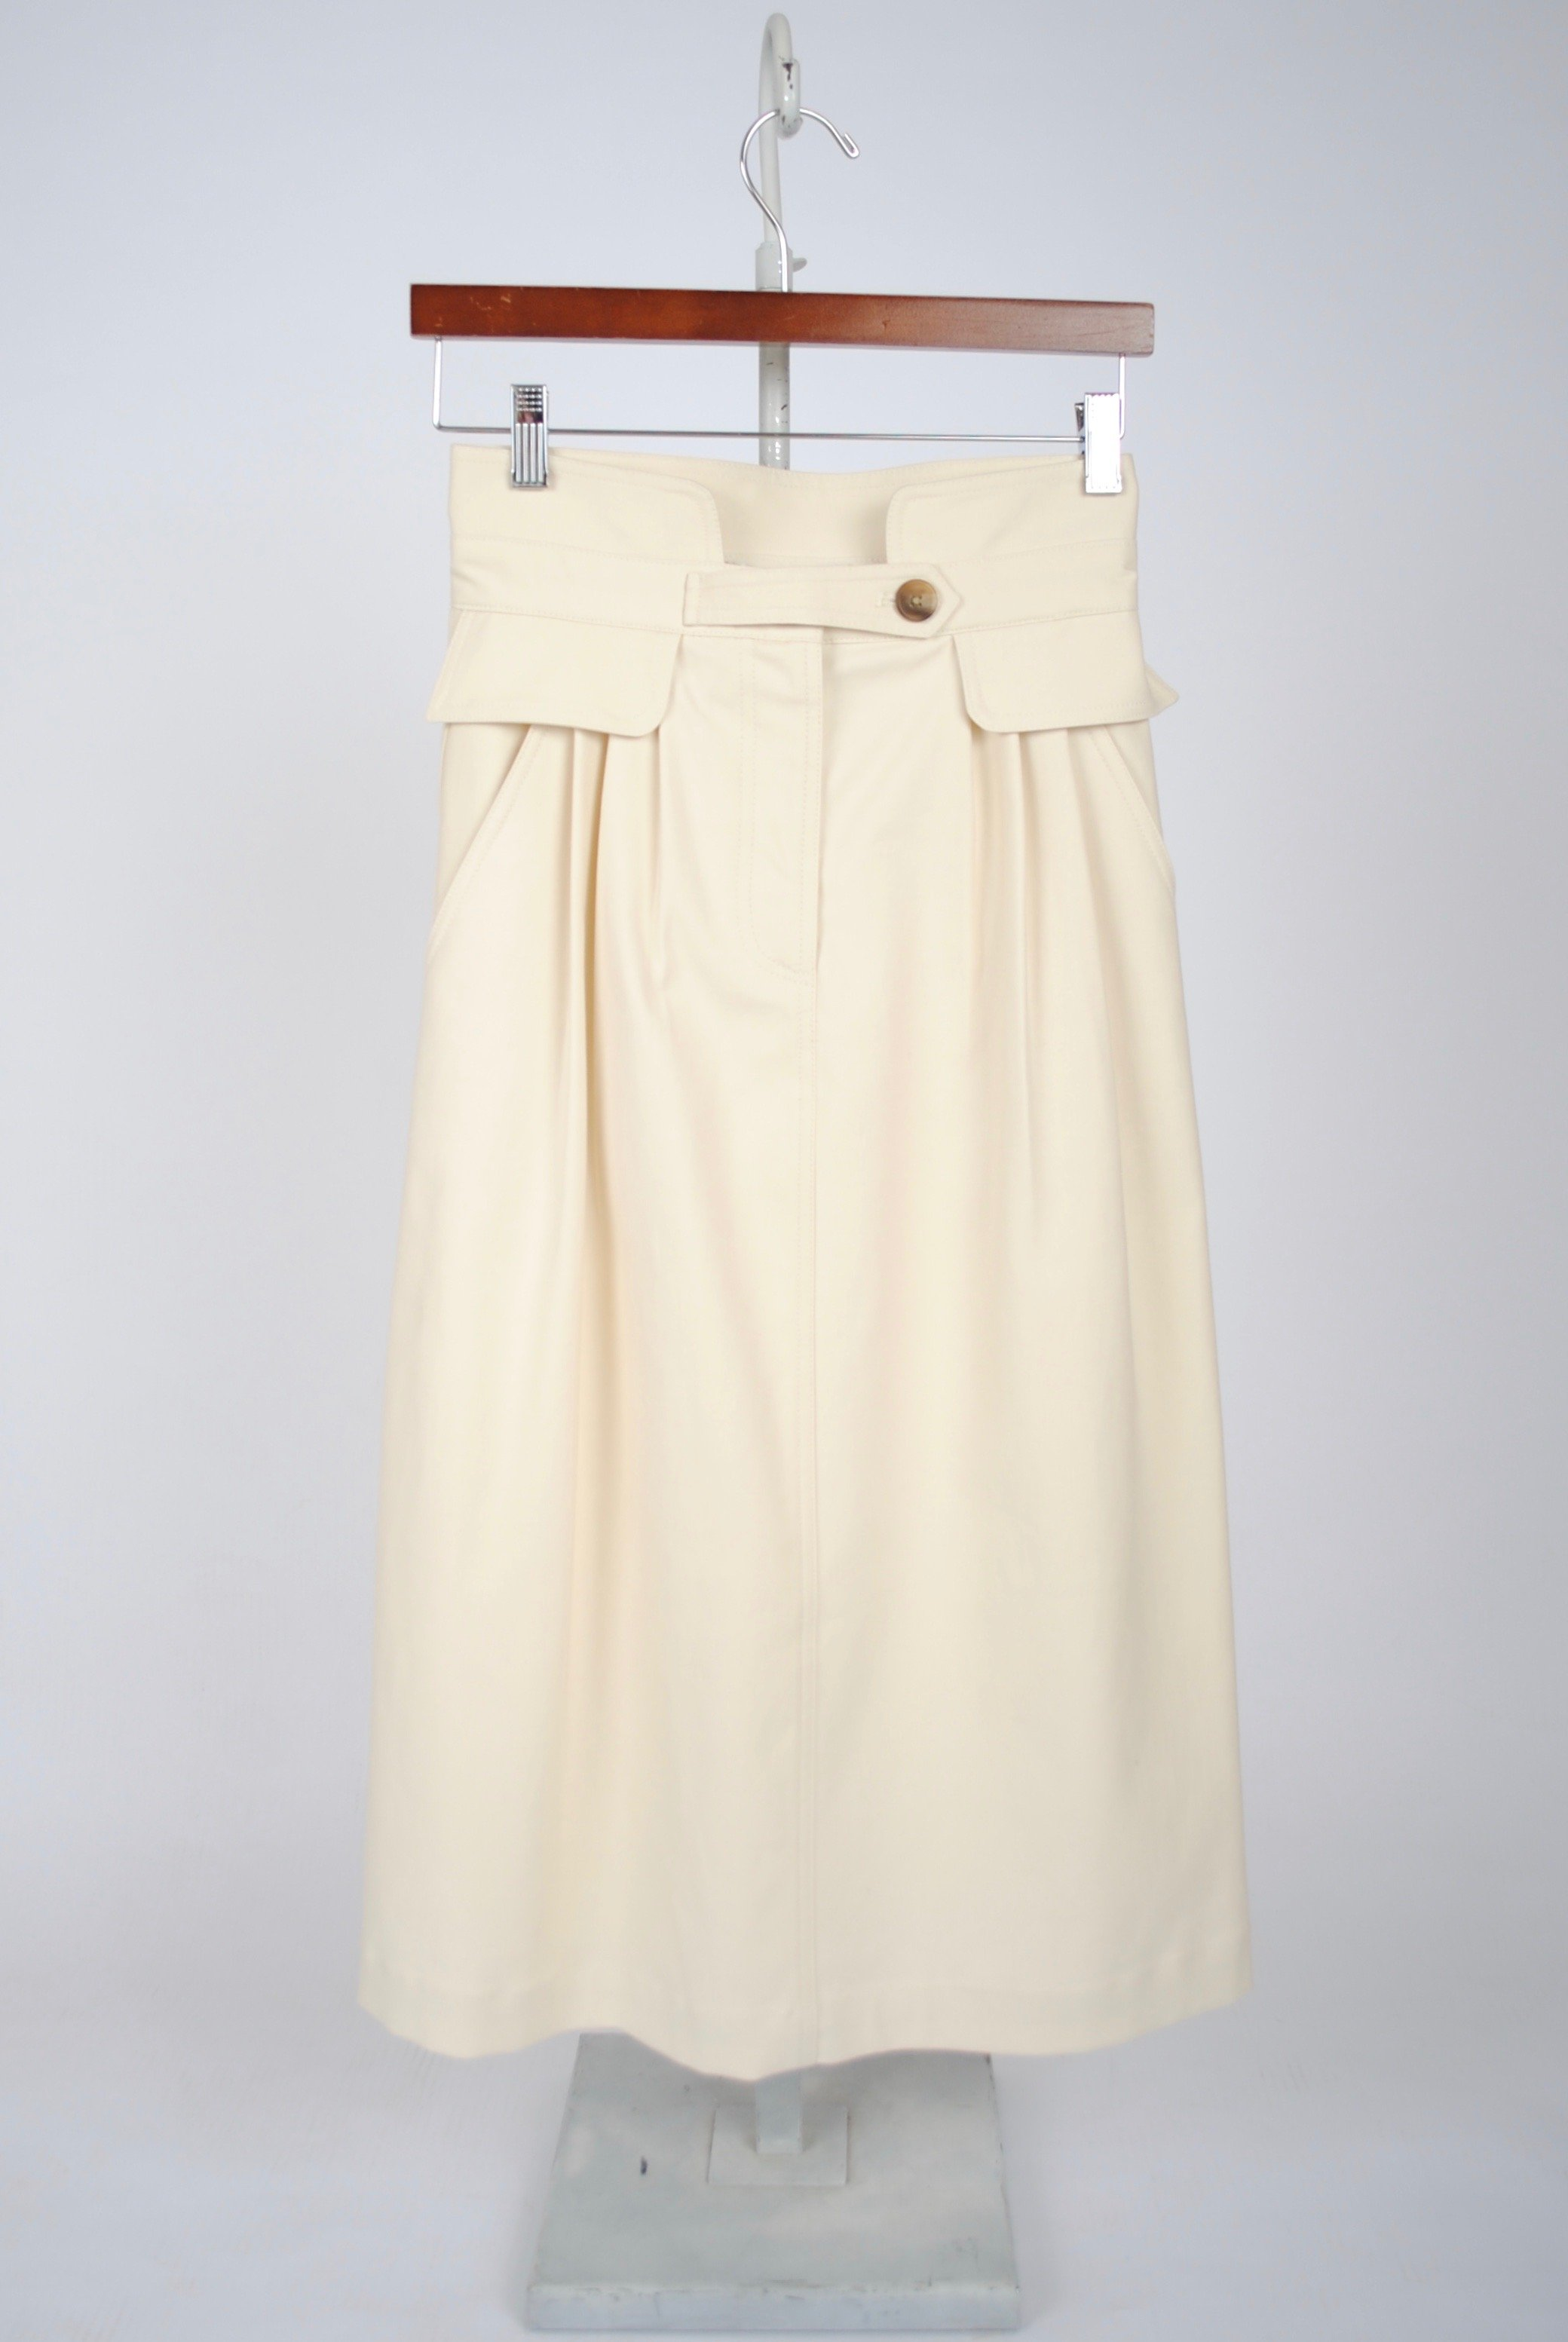 SEA Kamille Skirt - Cream